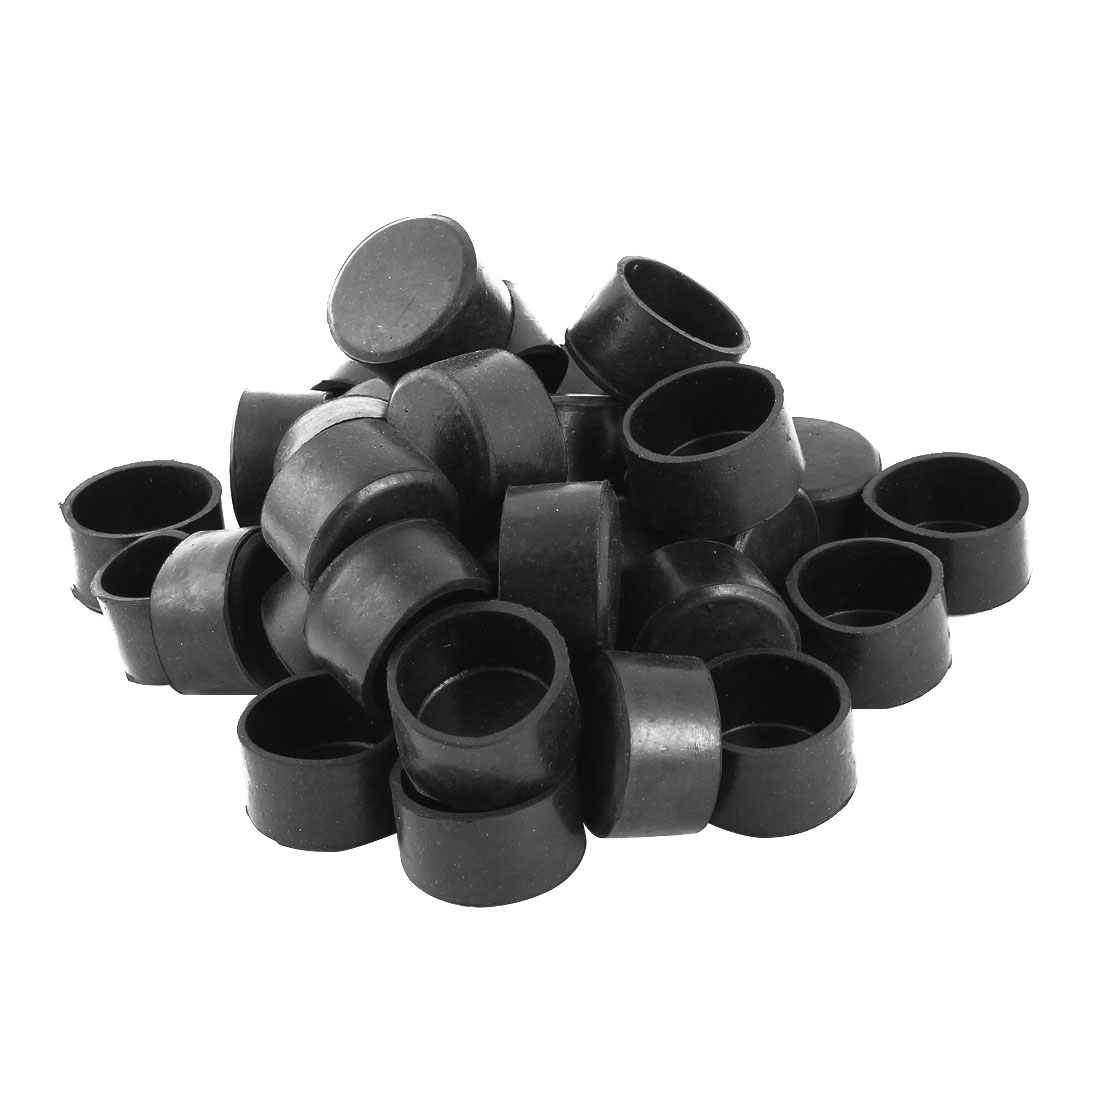 """38mm 1 1/2"""" Rubber Round Chair Leg Caps Furniture Feet Cover Protectors 36pcs"""